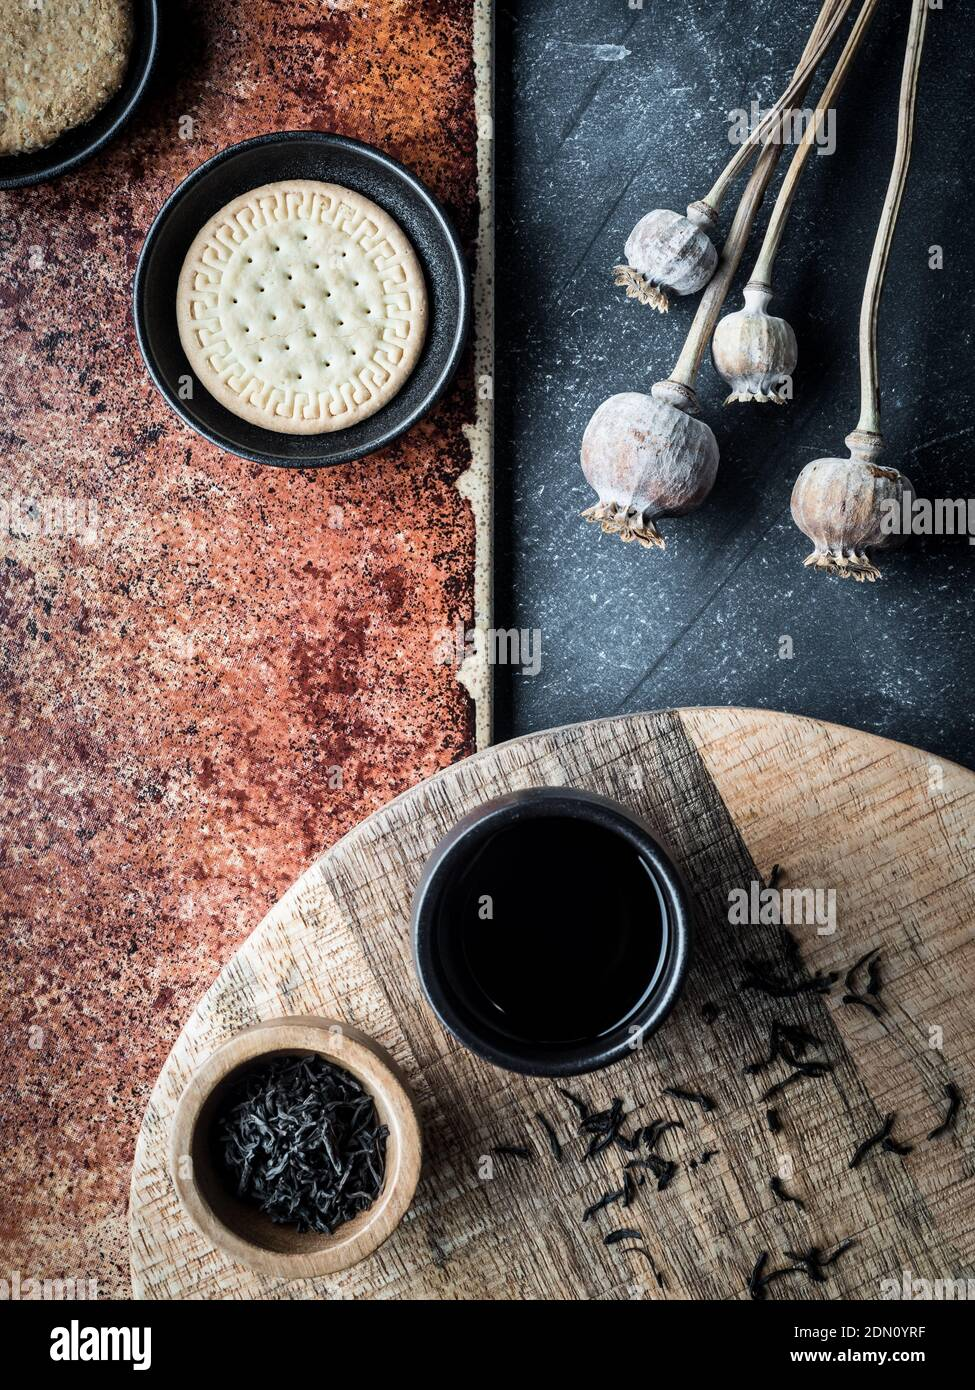 Different types of cookies and cup of cofee on grey and teracota background. Overhead shot. Stock Photo